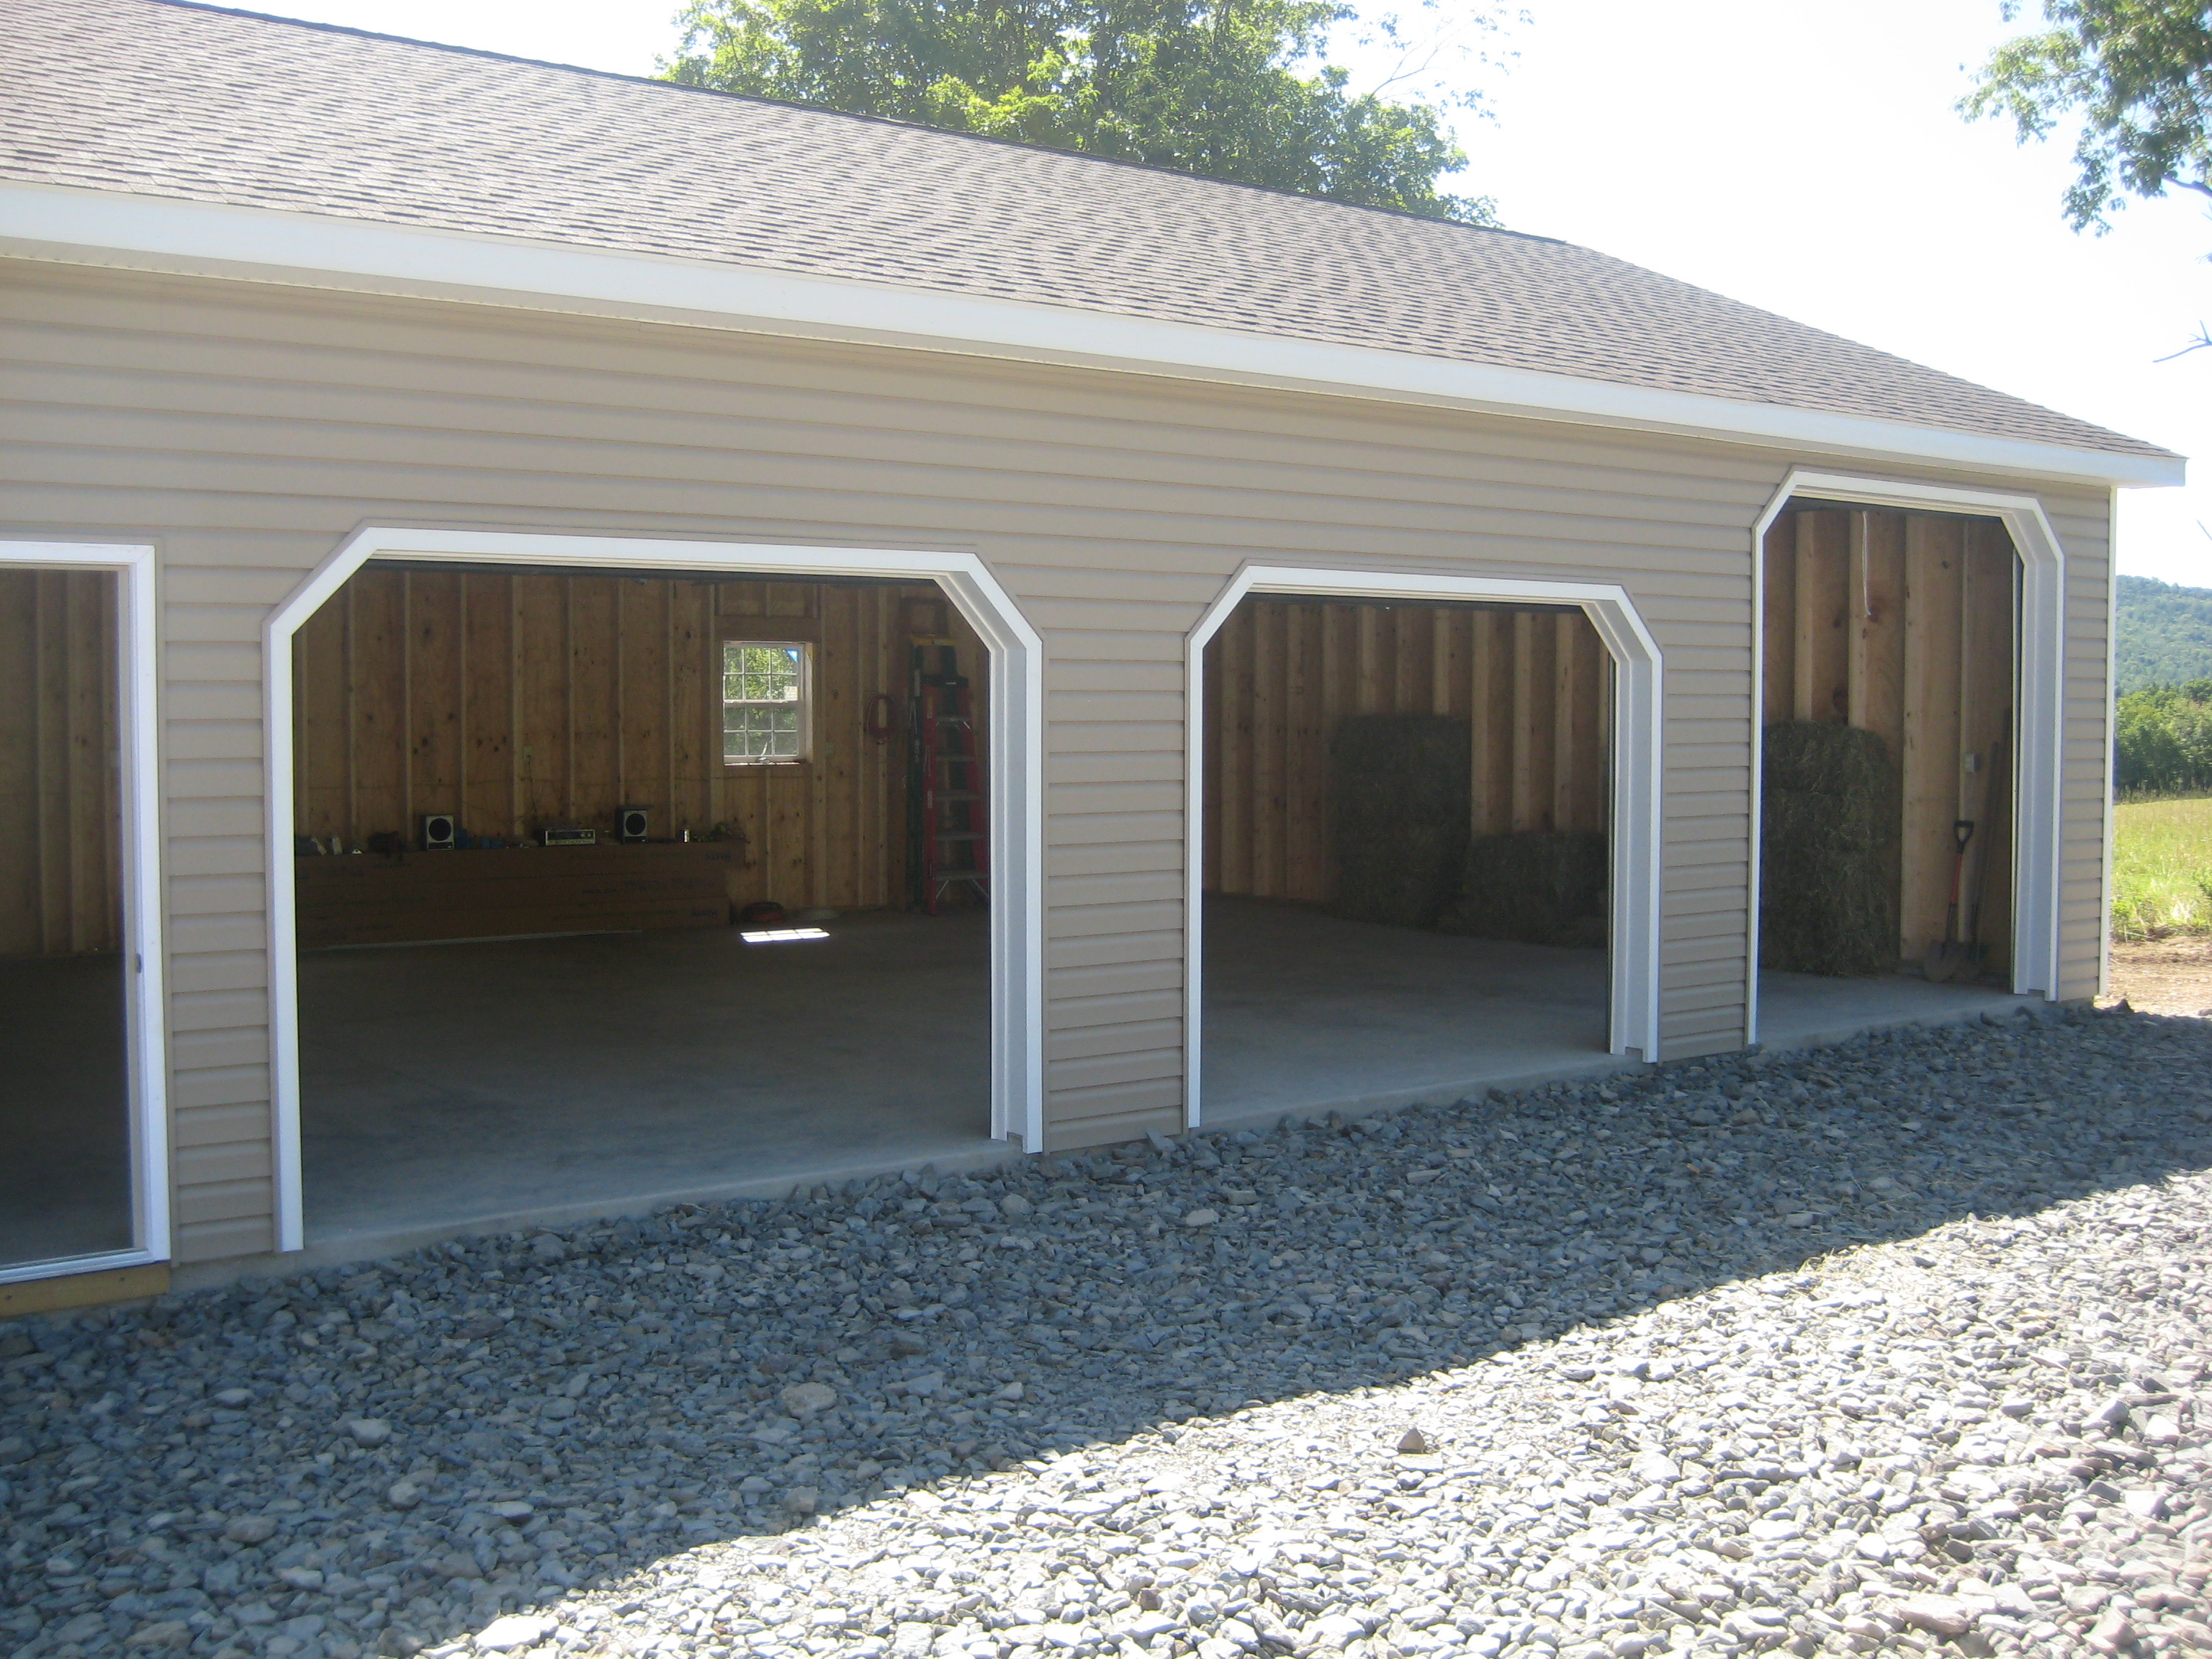 Blachet 3 car garage for 4 bay garage plans